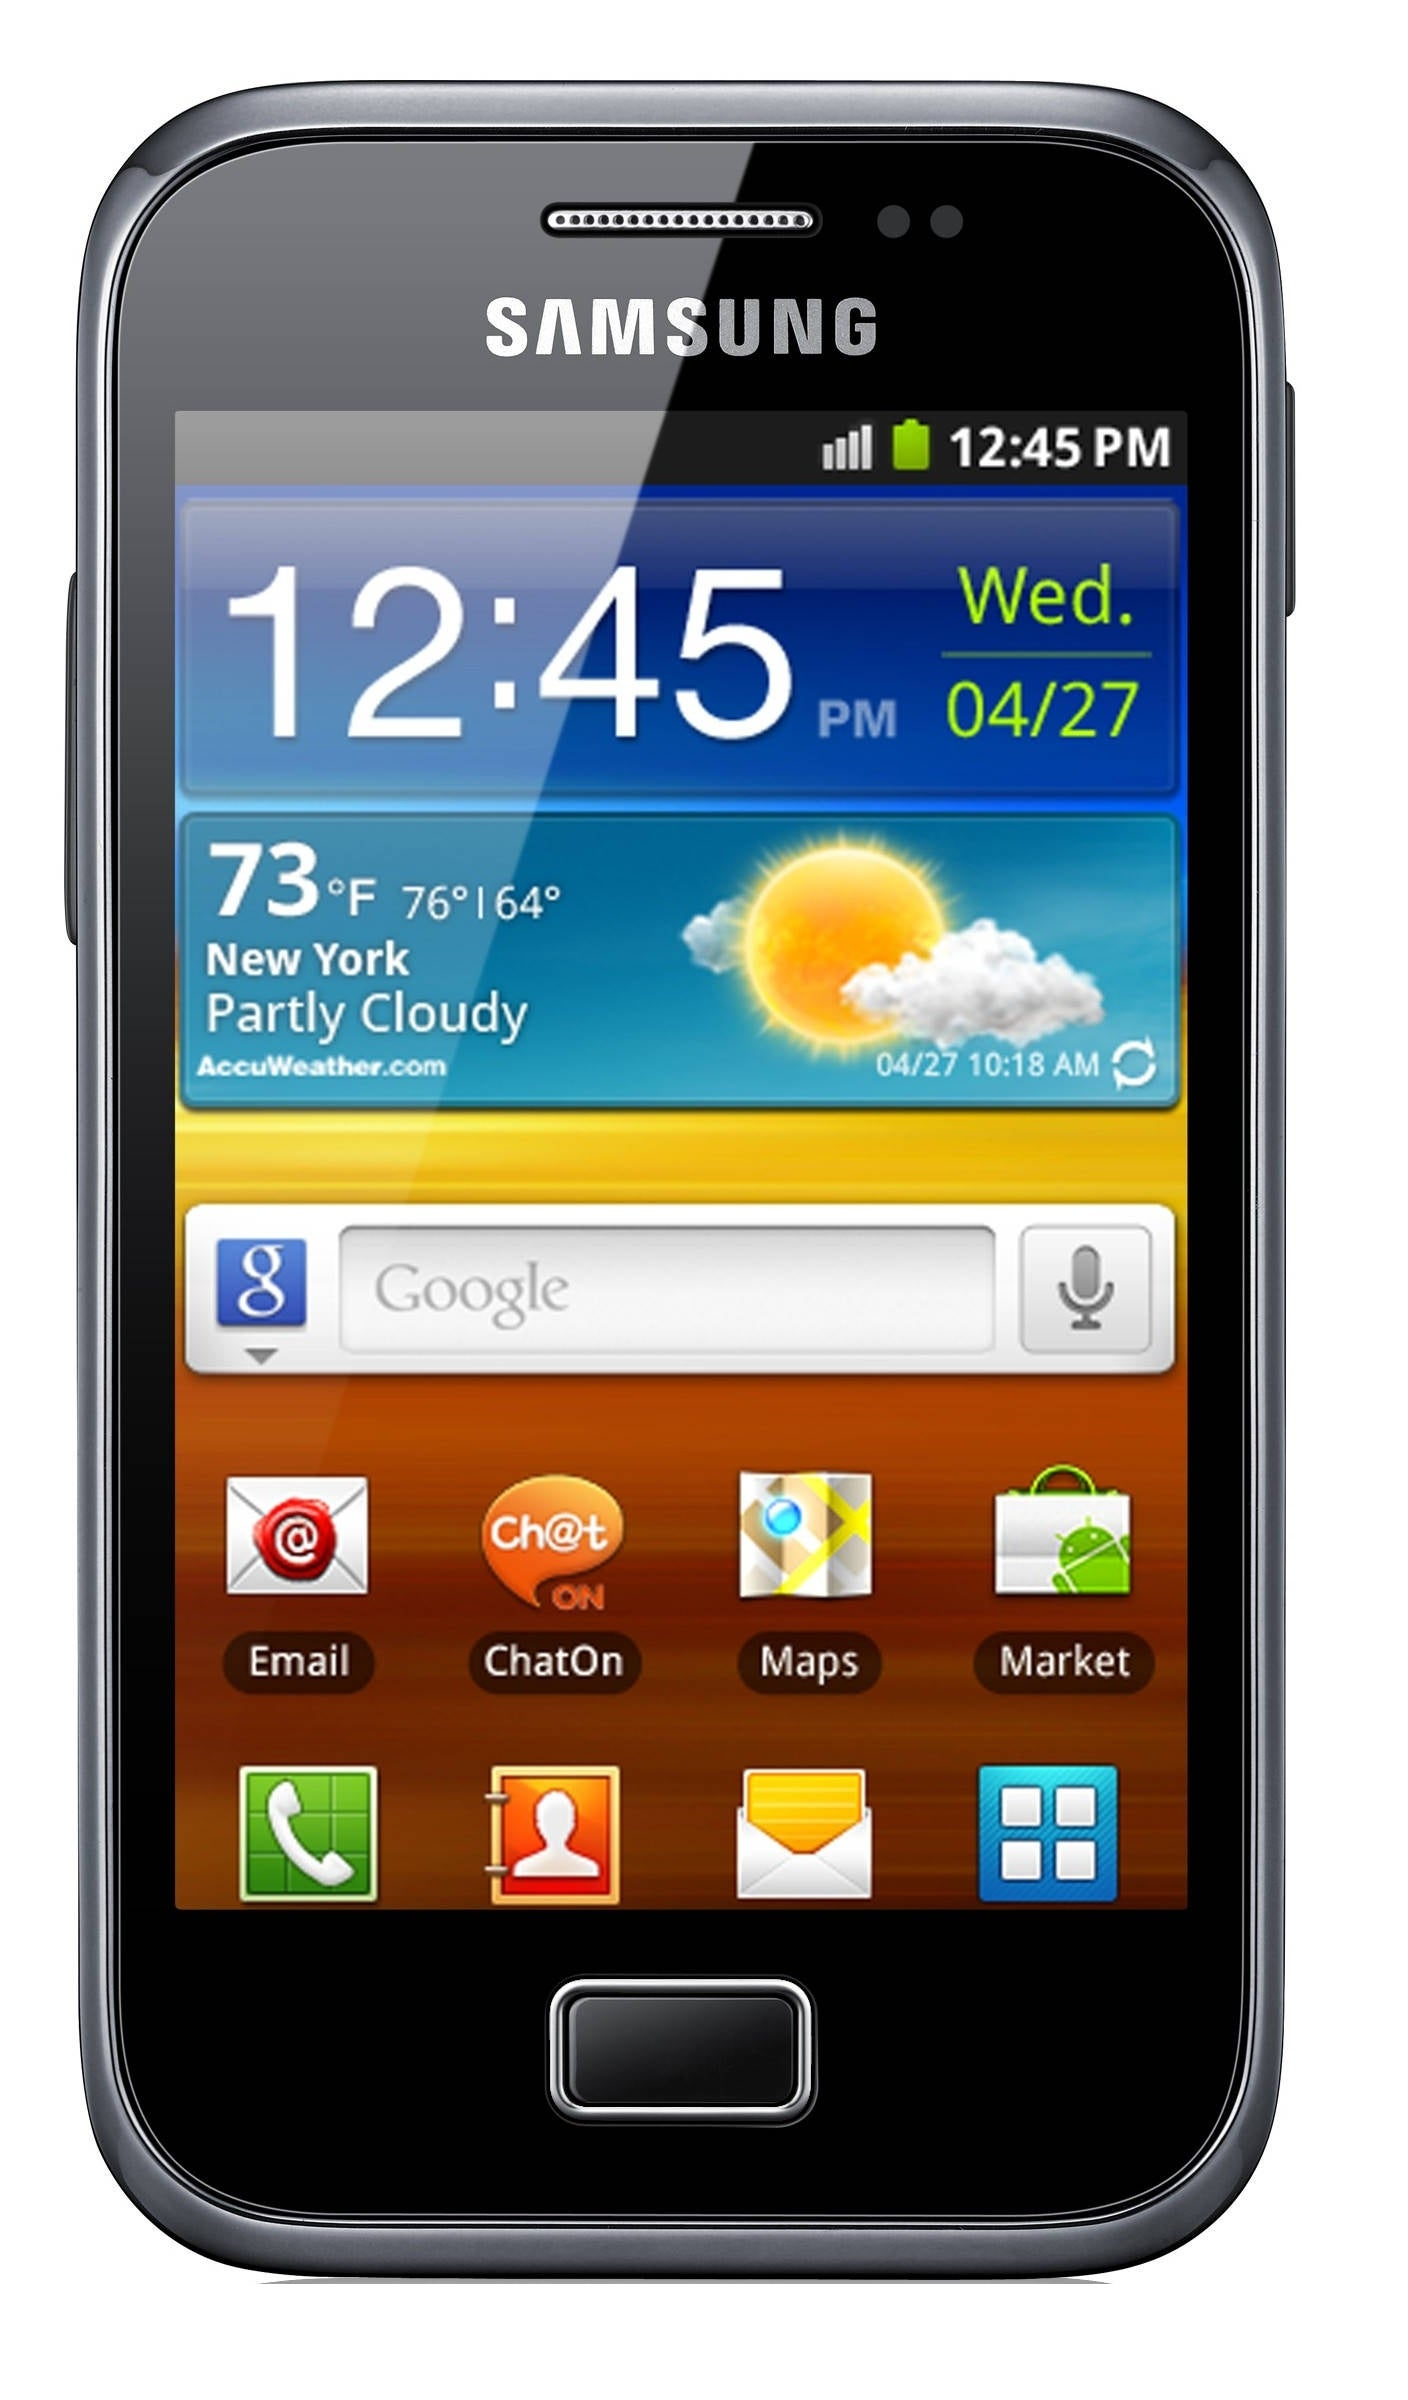 Samsung Galaxy Ace Plus S7500 GSM Unlocked Android Cell Phone